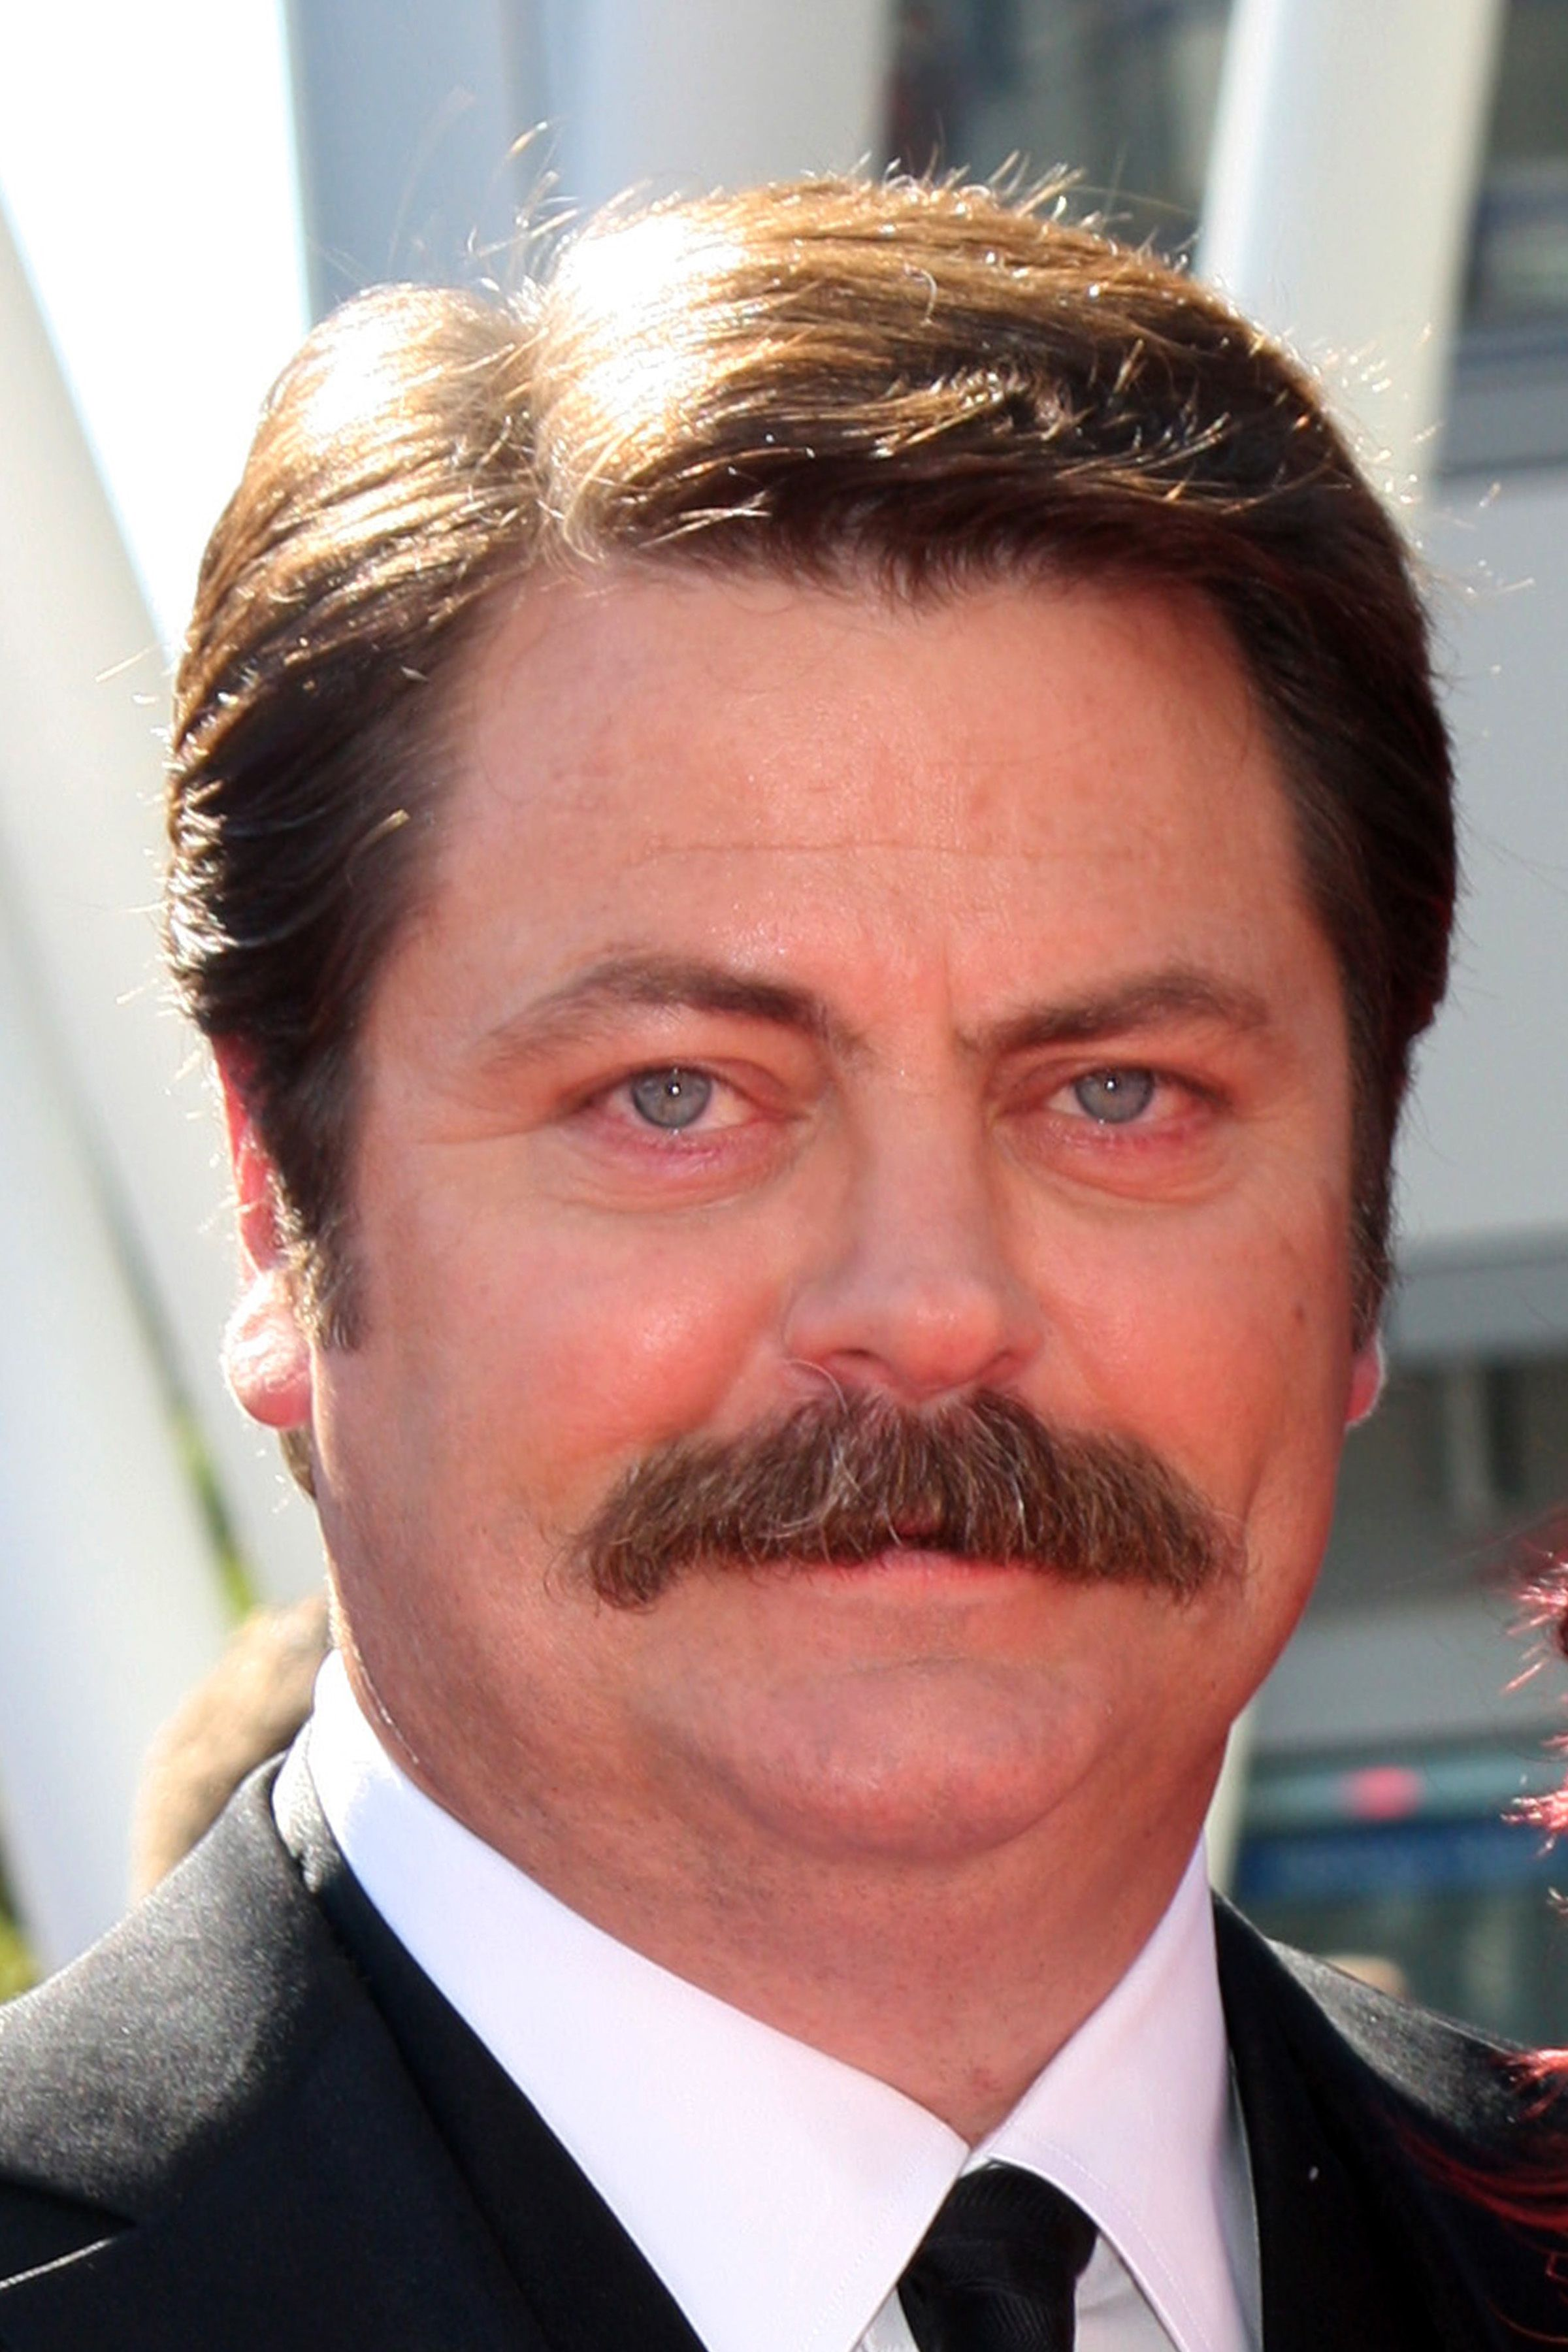 10. Nick Offerman's Stache